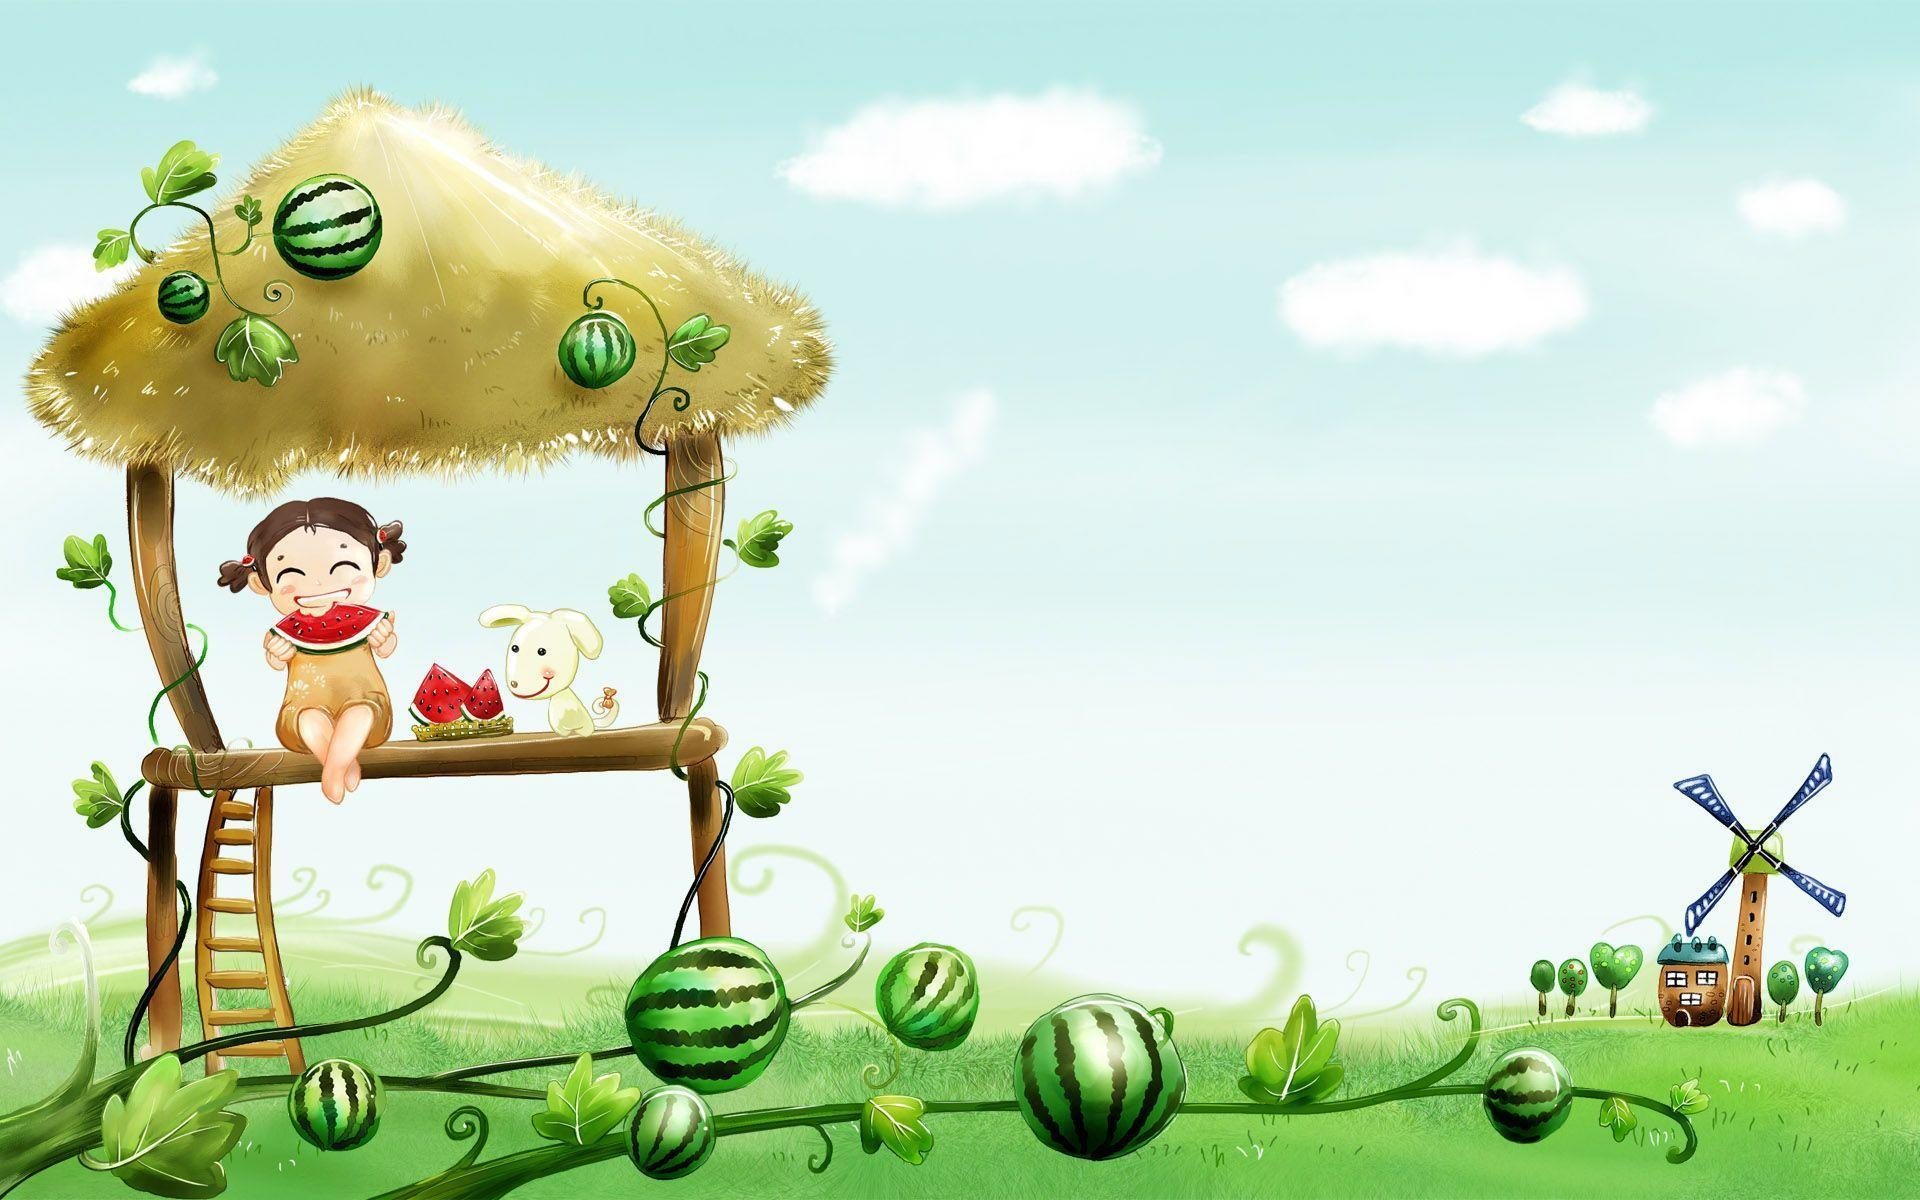 cartoons wallpapers 2 - photo #44